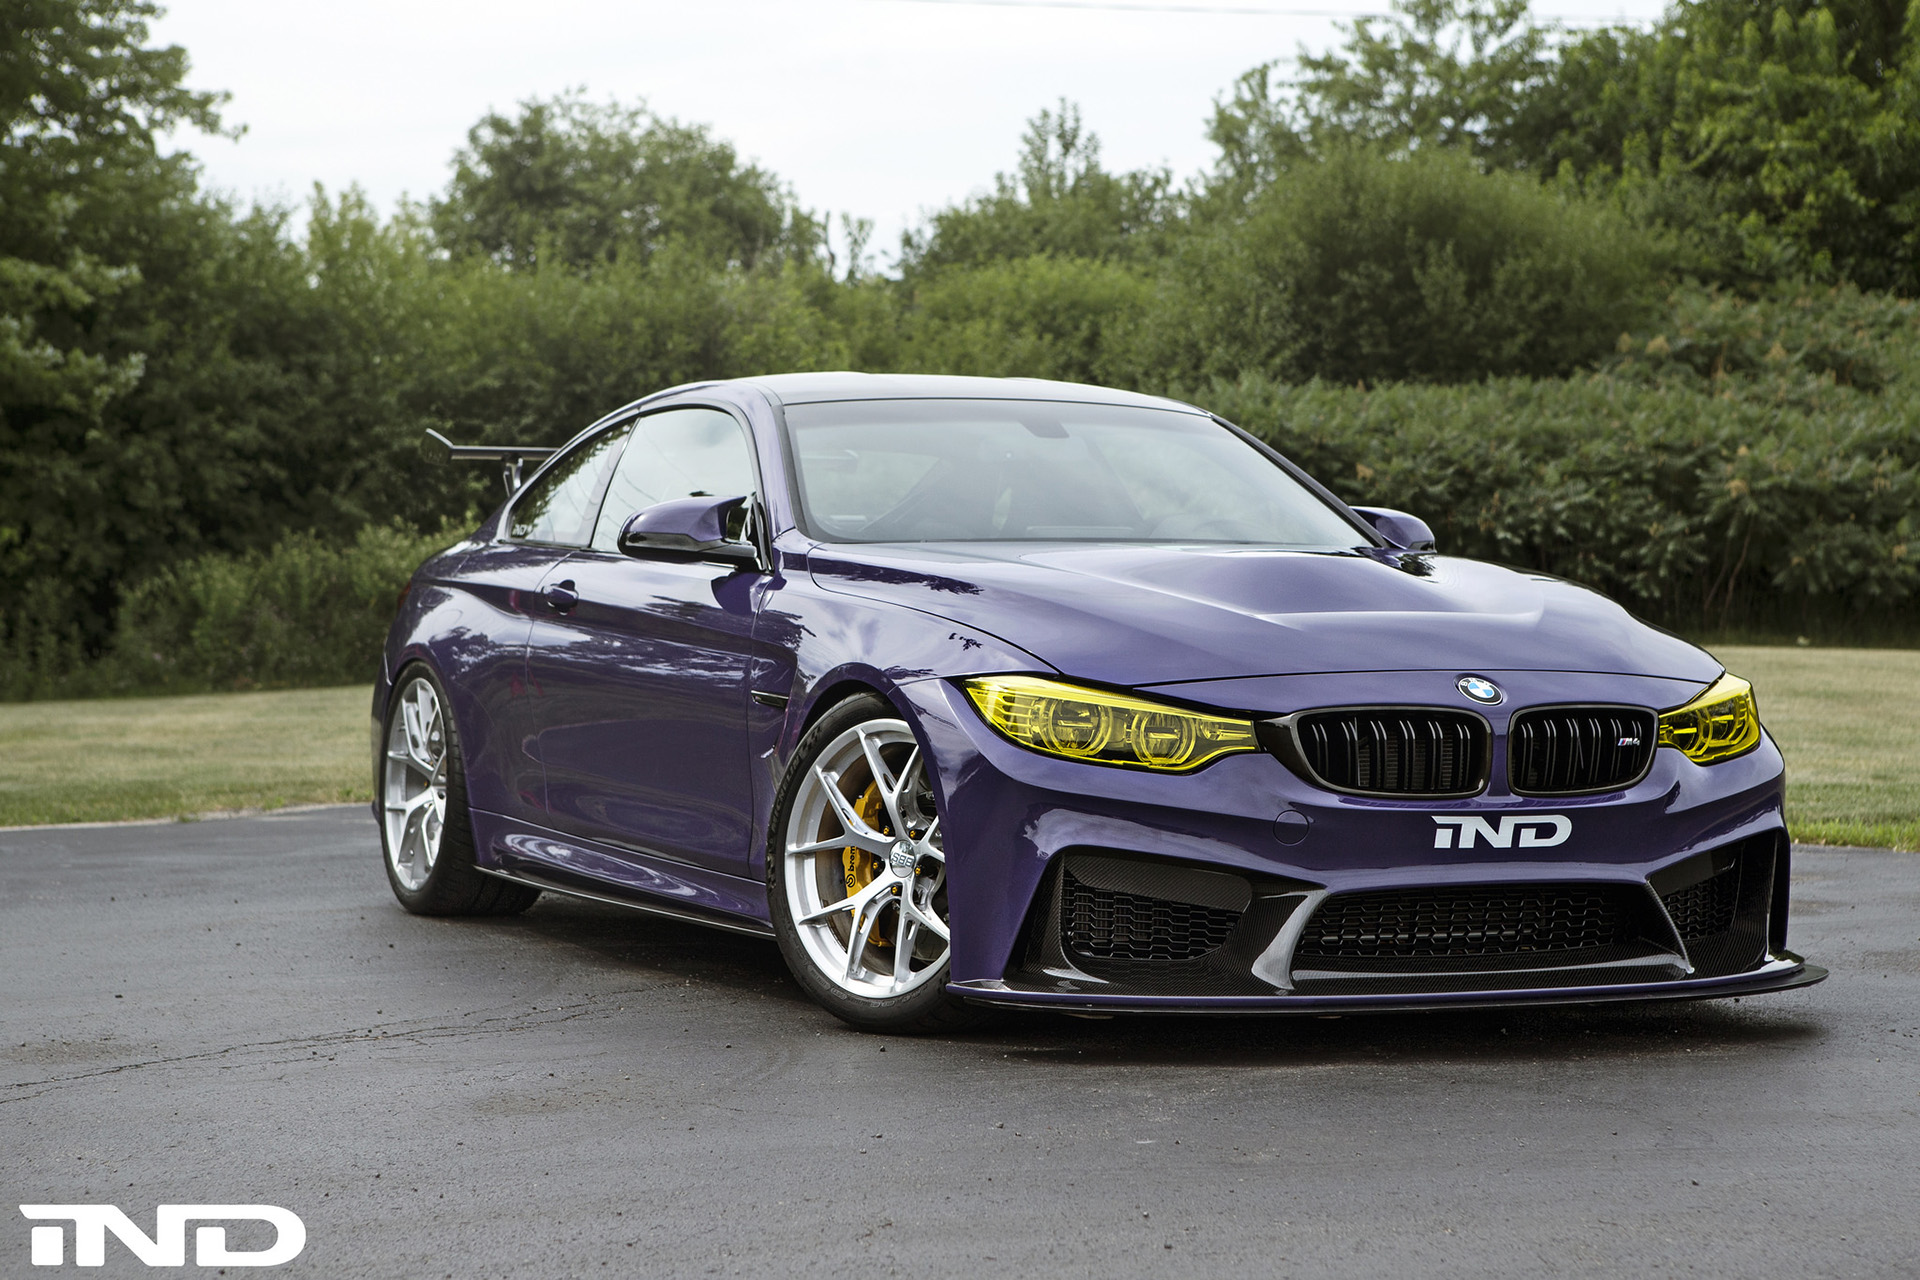 Ultraviolet Purple Bmw M4 Build By Ind Distribution